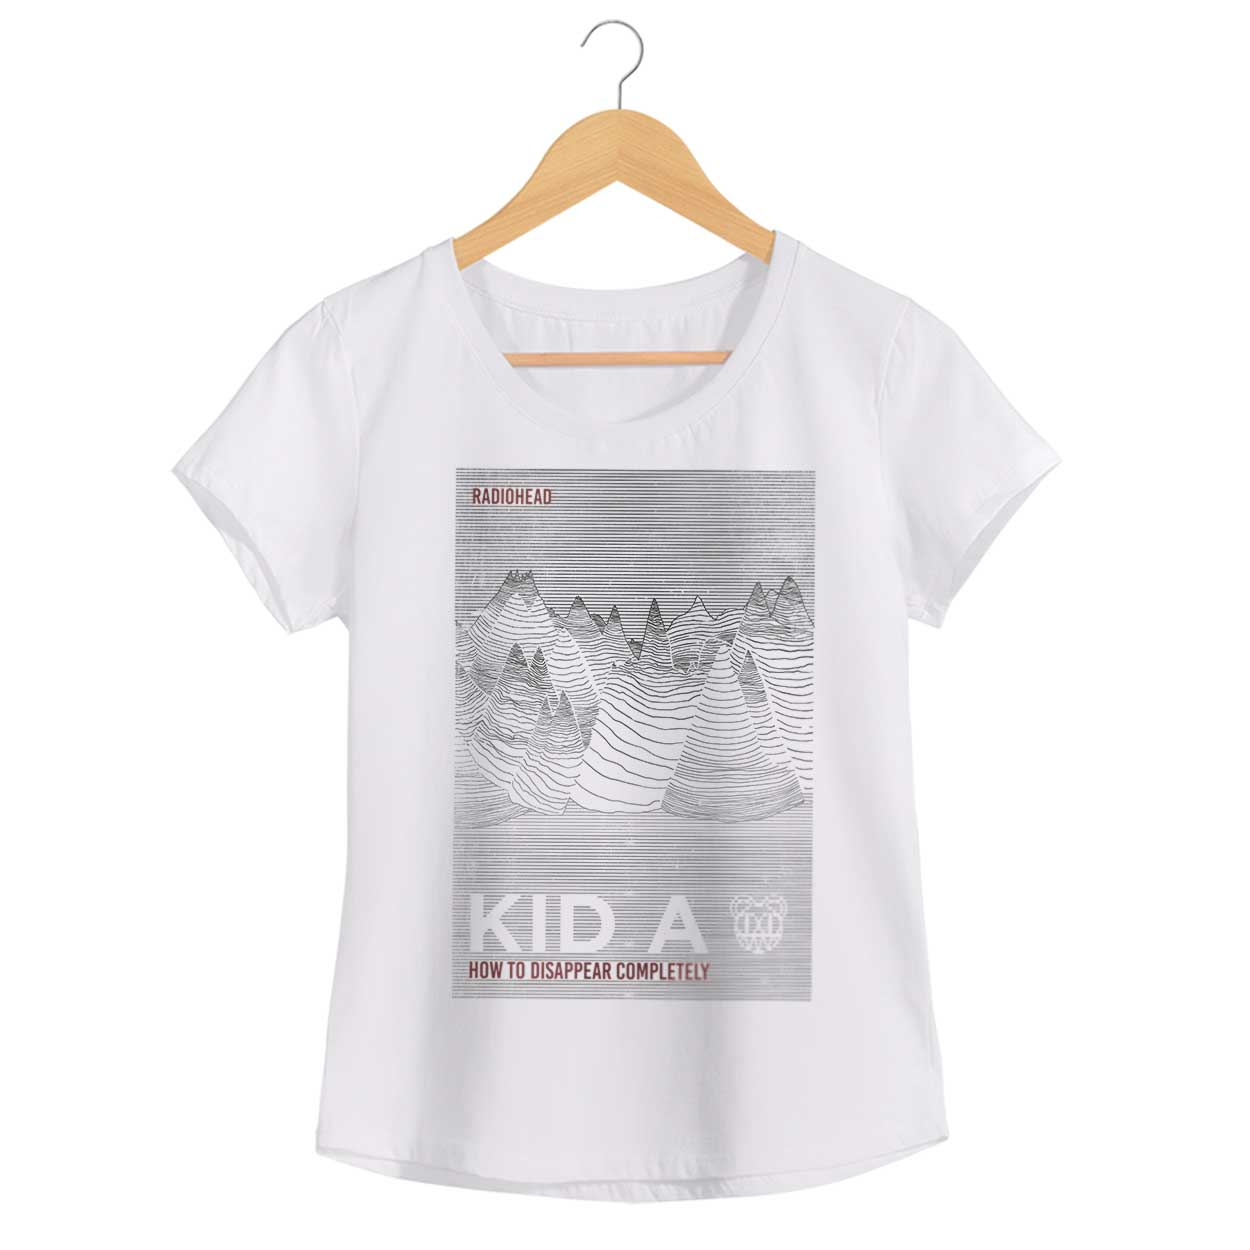 Camiseta - How To Disappear Completely - Radiohead - Feminino